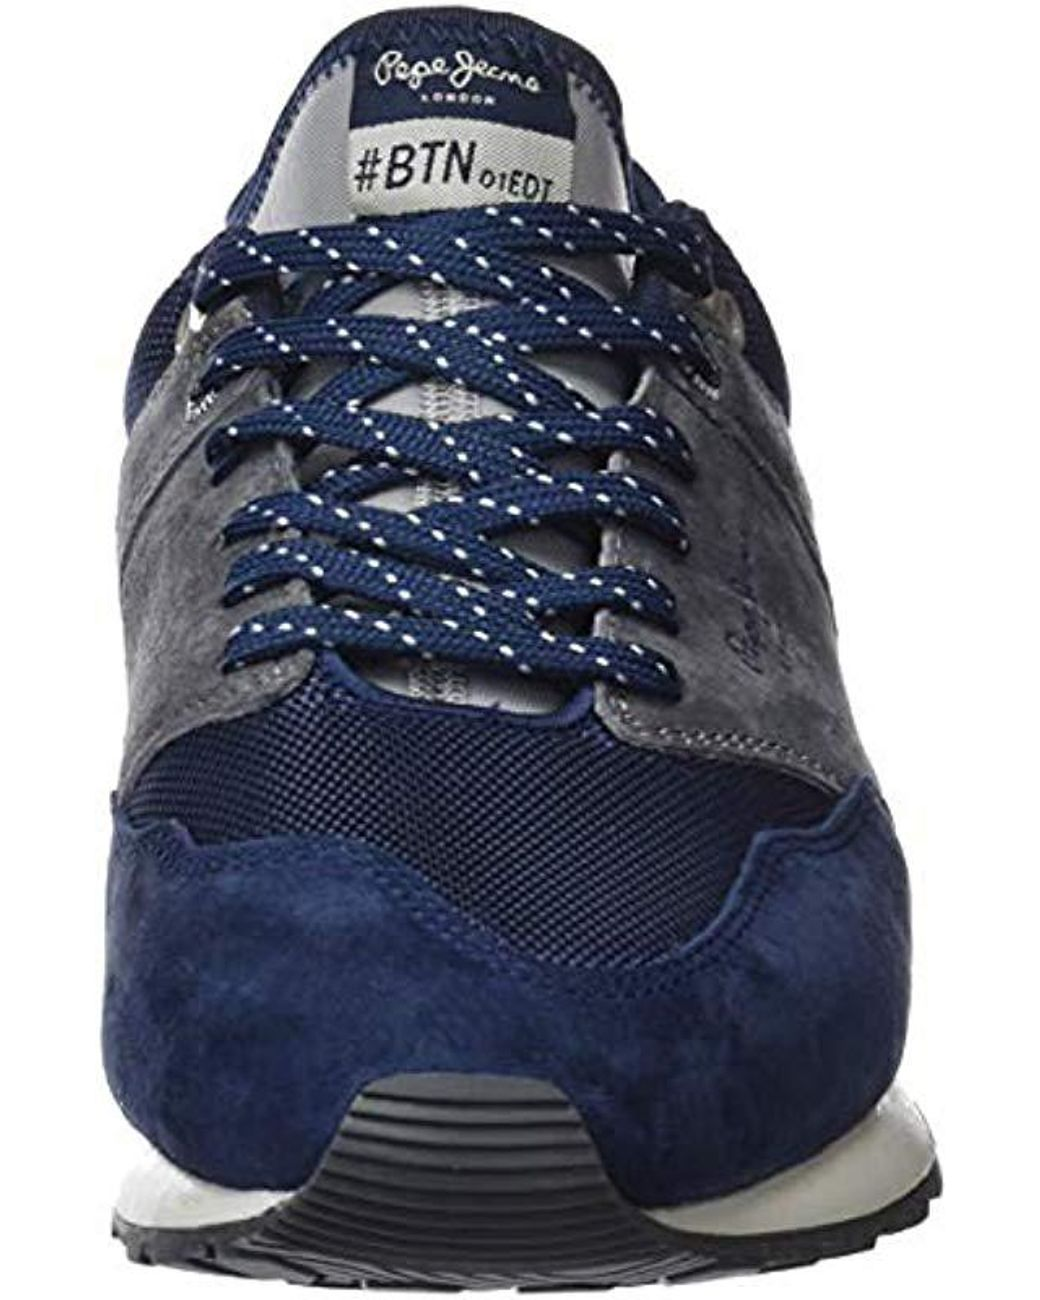 e7e2cb8492f Pepe Jeans Btn Treck Pack Trainers in Blue for Men - Lyst